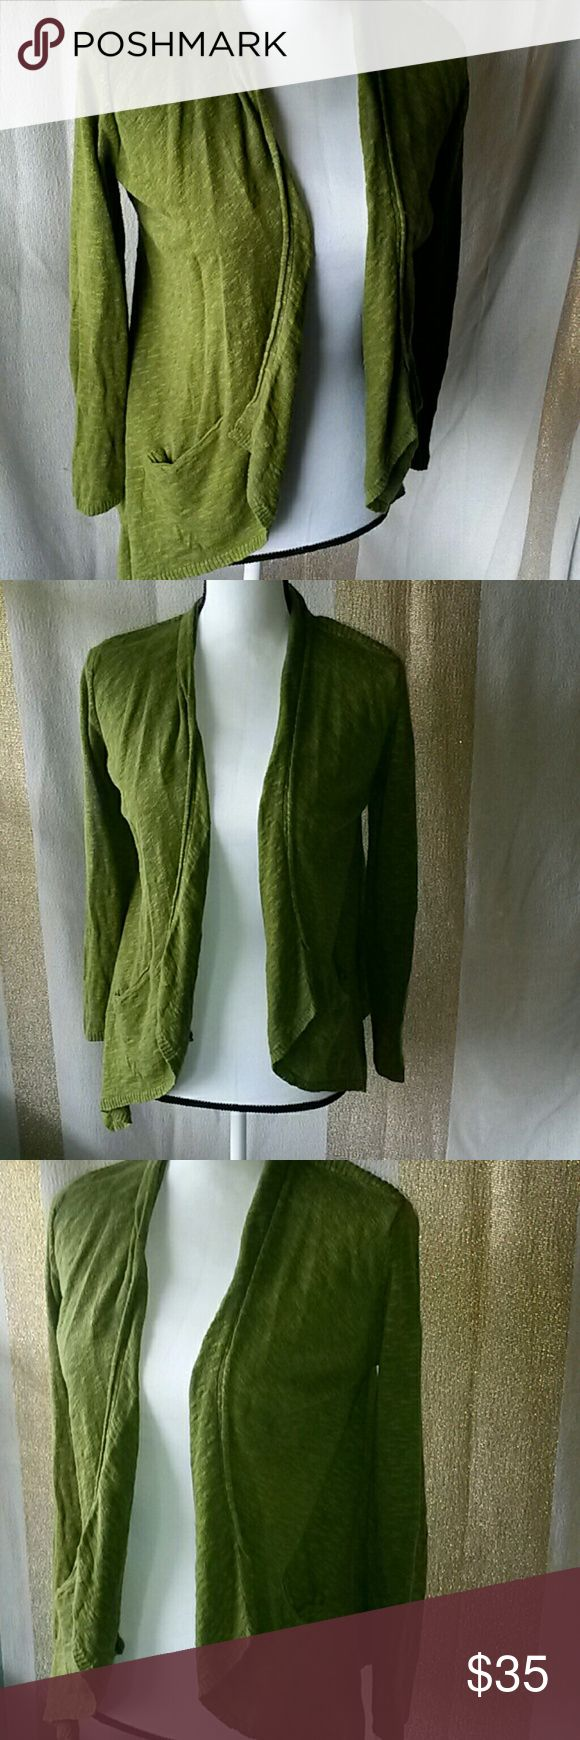 Eileen Fisher small open front cardigan. Split pea soup green. Size small Good Condition.  Length- 25 inches Chest- 21 inches Eileen Fisher Sweaters Cardigans